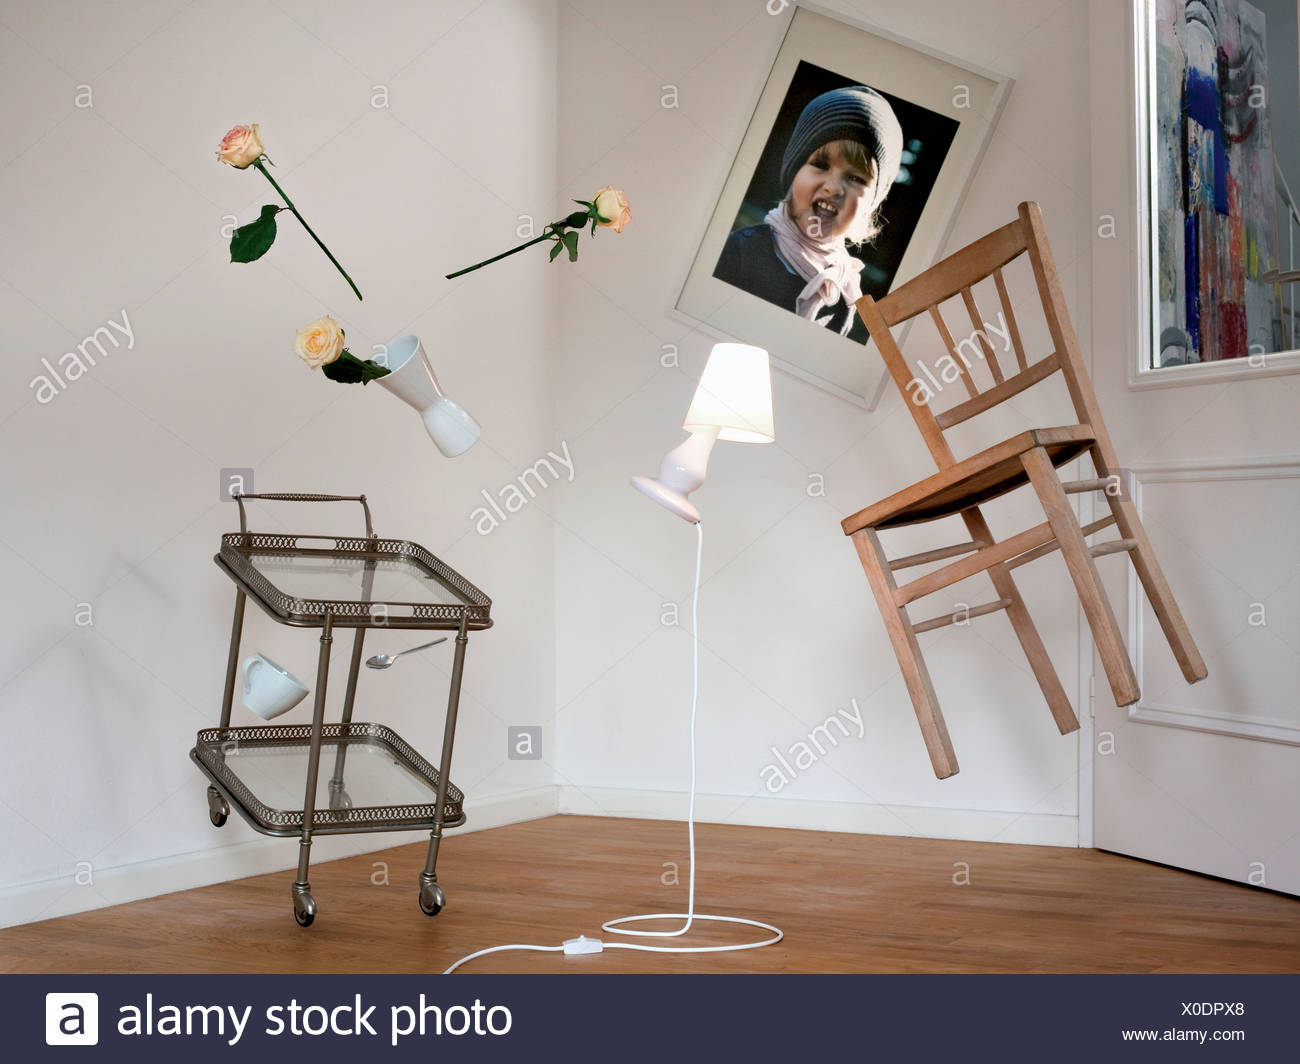 Chair, lamp and table floating in room - Stock Image